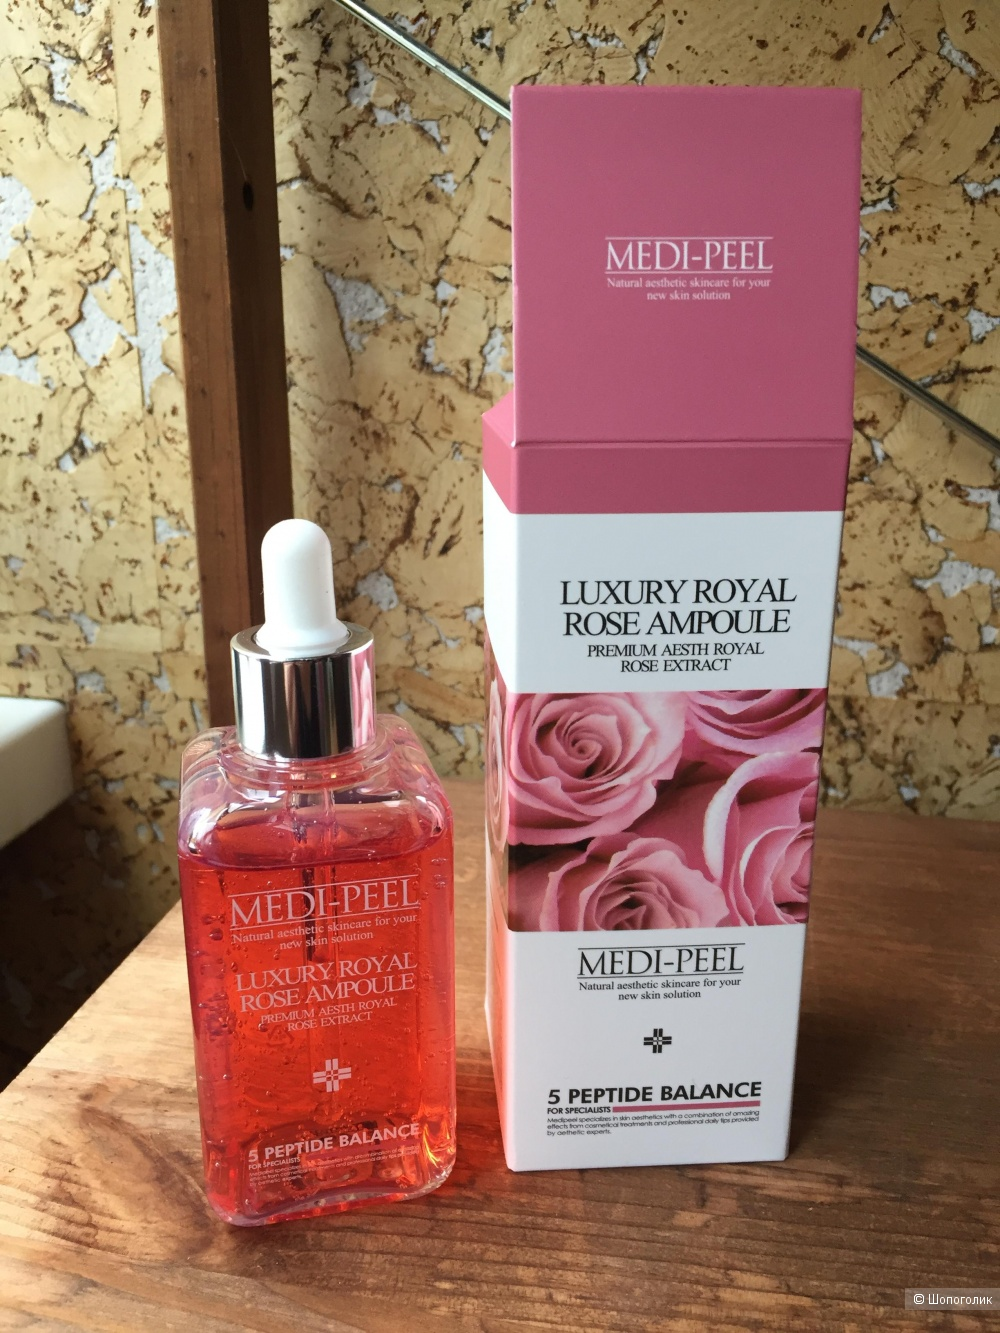 Сыворотка Medi-peel Luxury Royal Rose Ampoule 100 ml